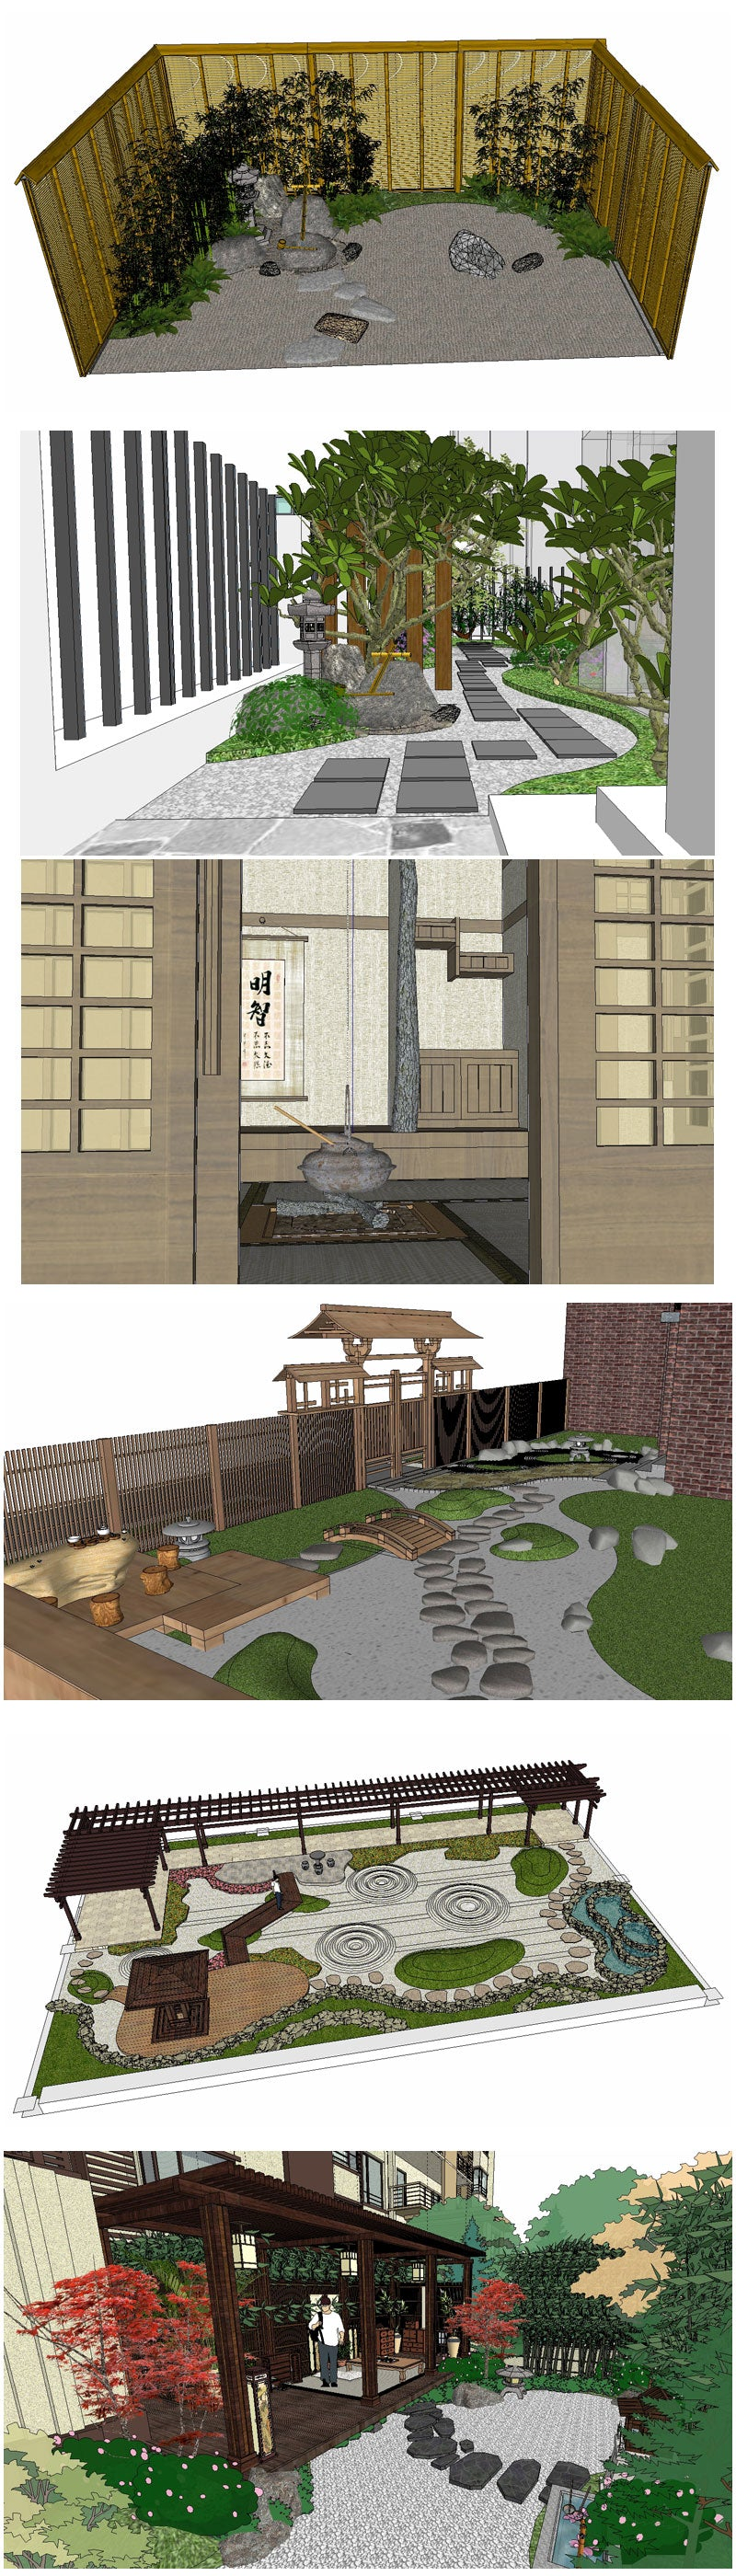 💎【Sketchup Architecture 3D Projects】9 Types of Japanese Garden Model Sketchup 3D Models